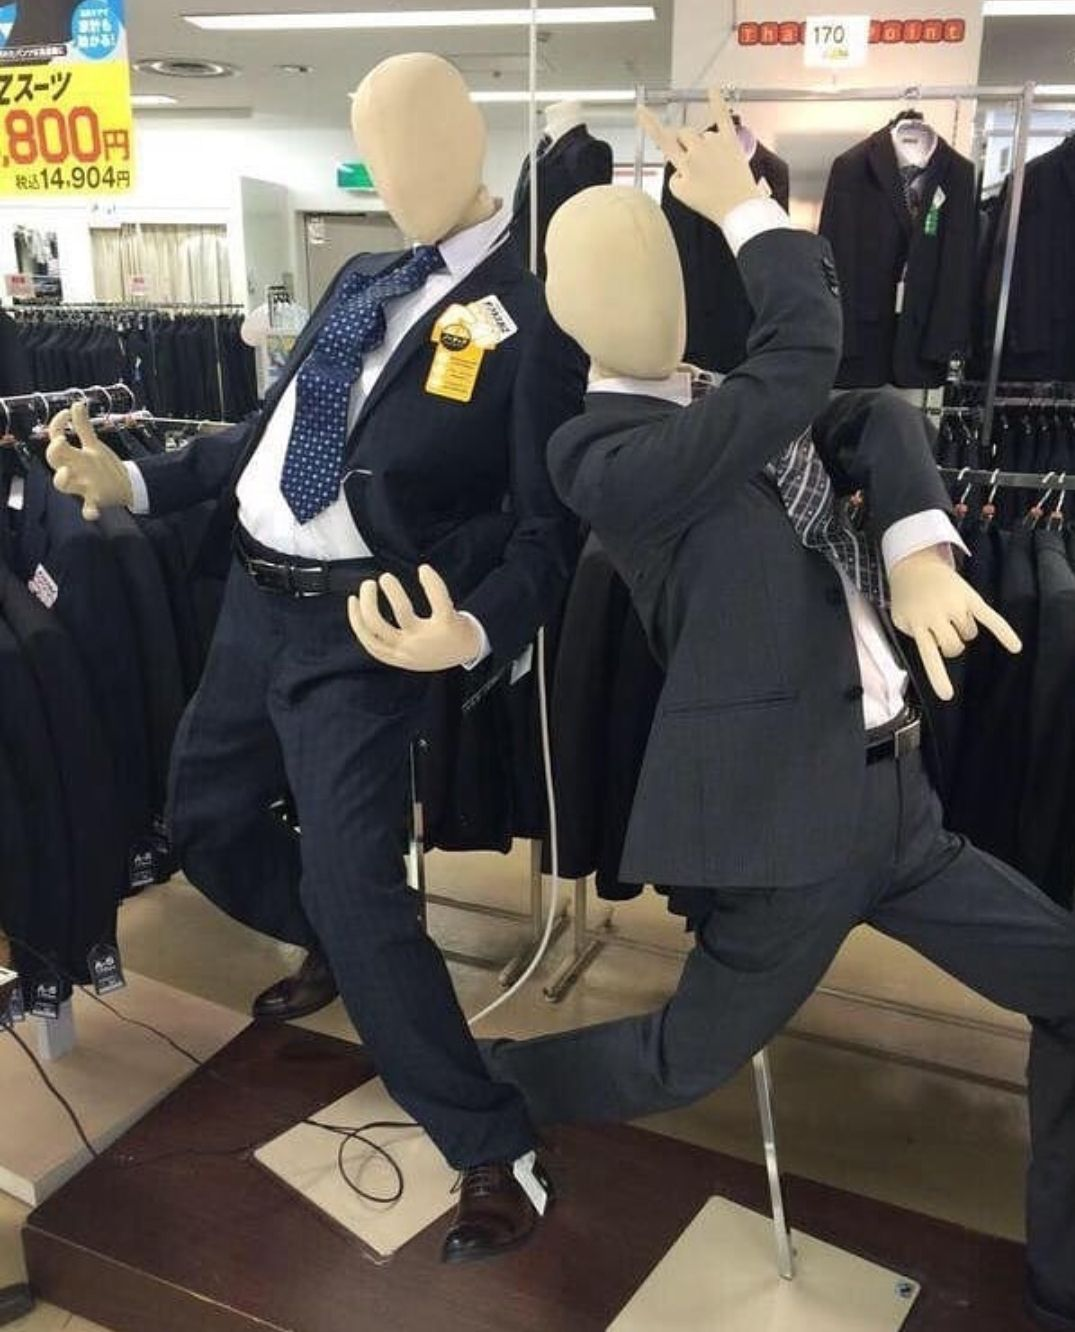 These mannequins